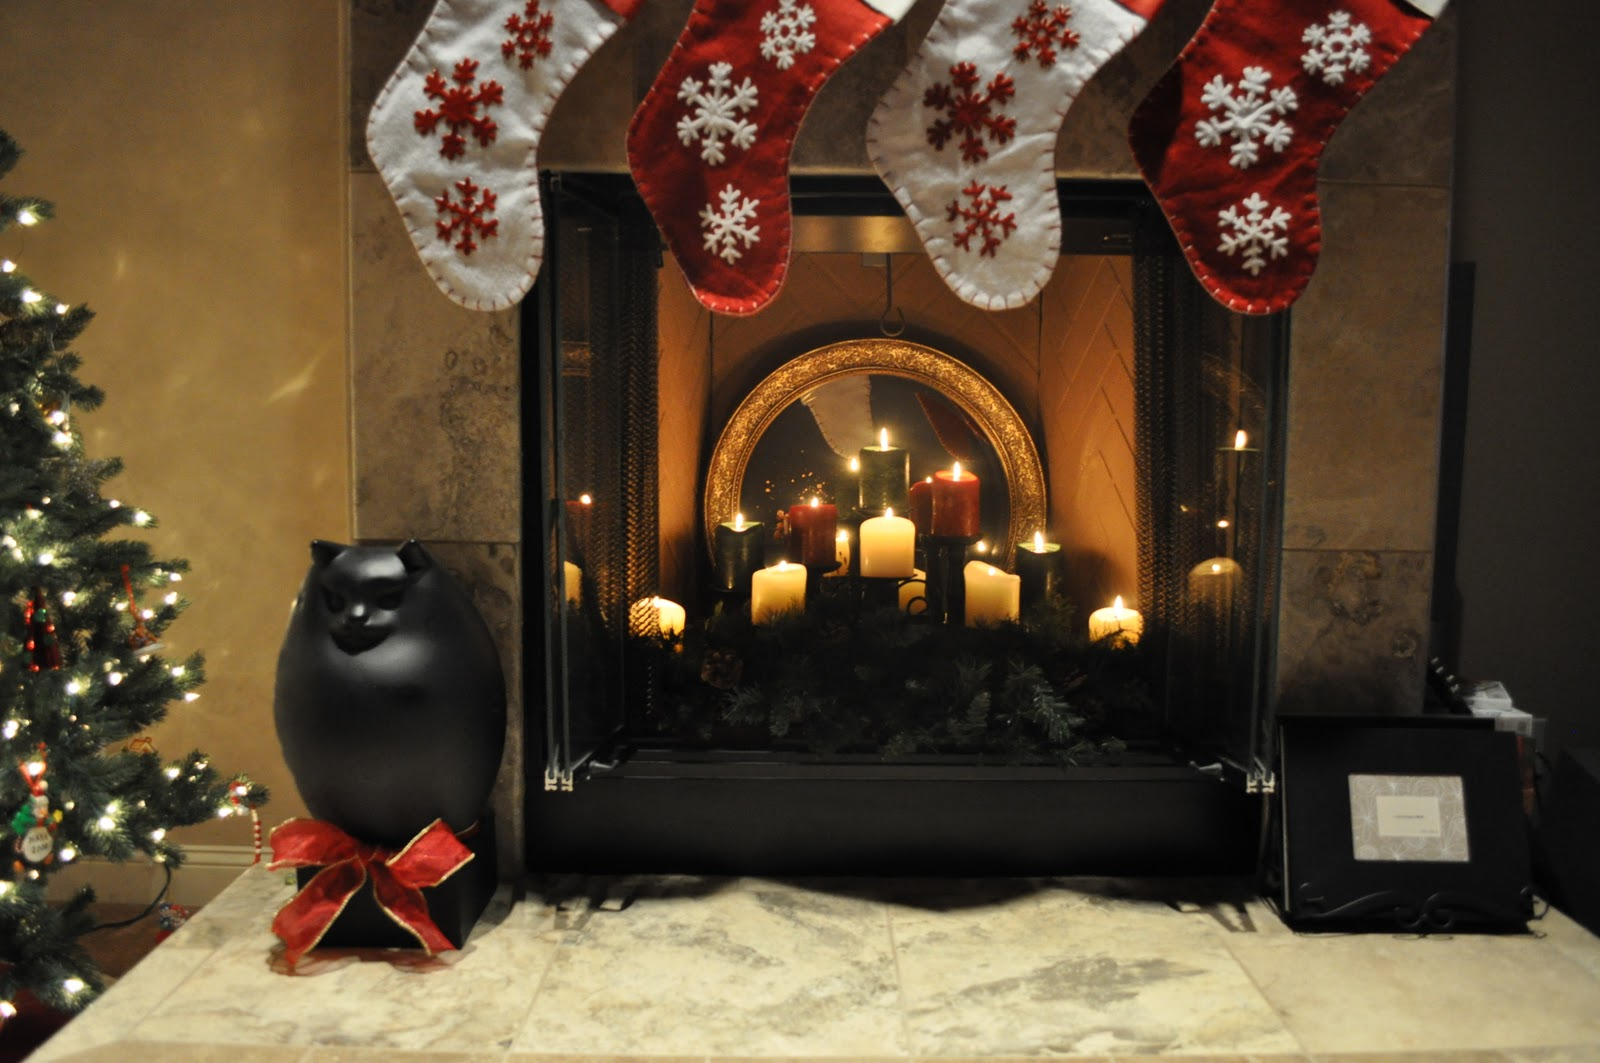 Lavender Clouds: My Christmas Candle Lit Fireplace